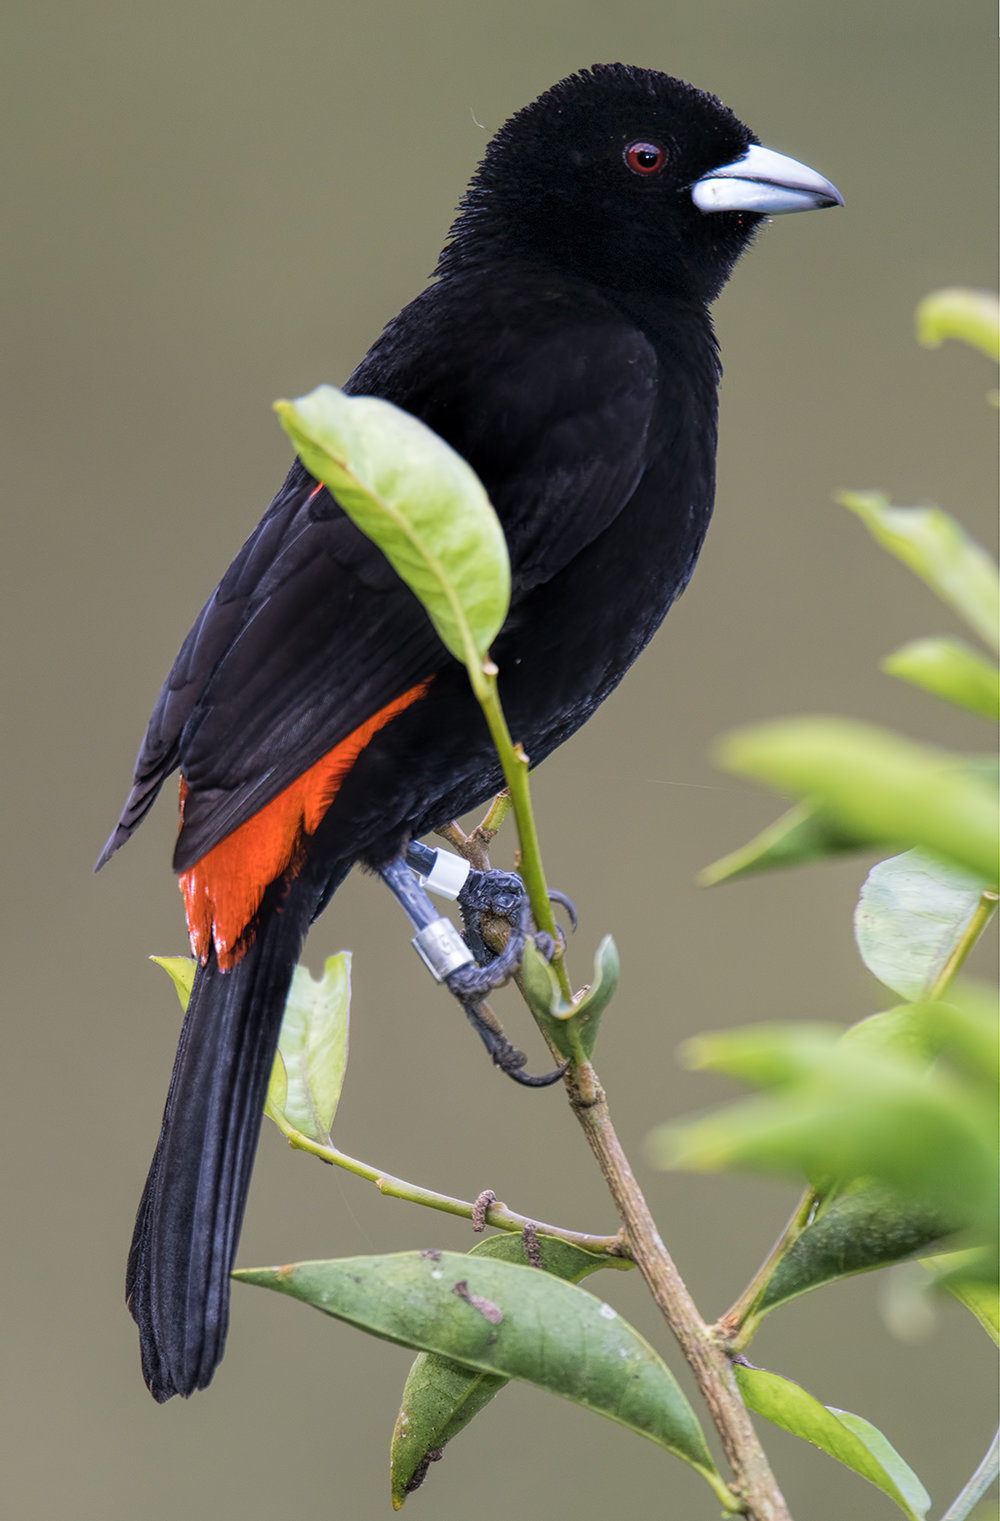 flame-rumped-tanager-016.jpg